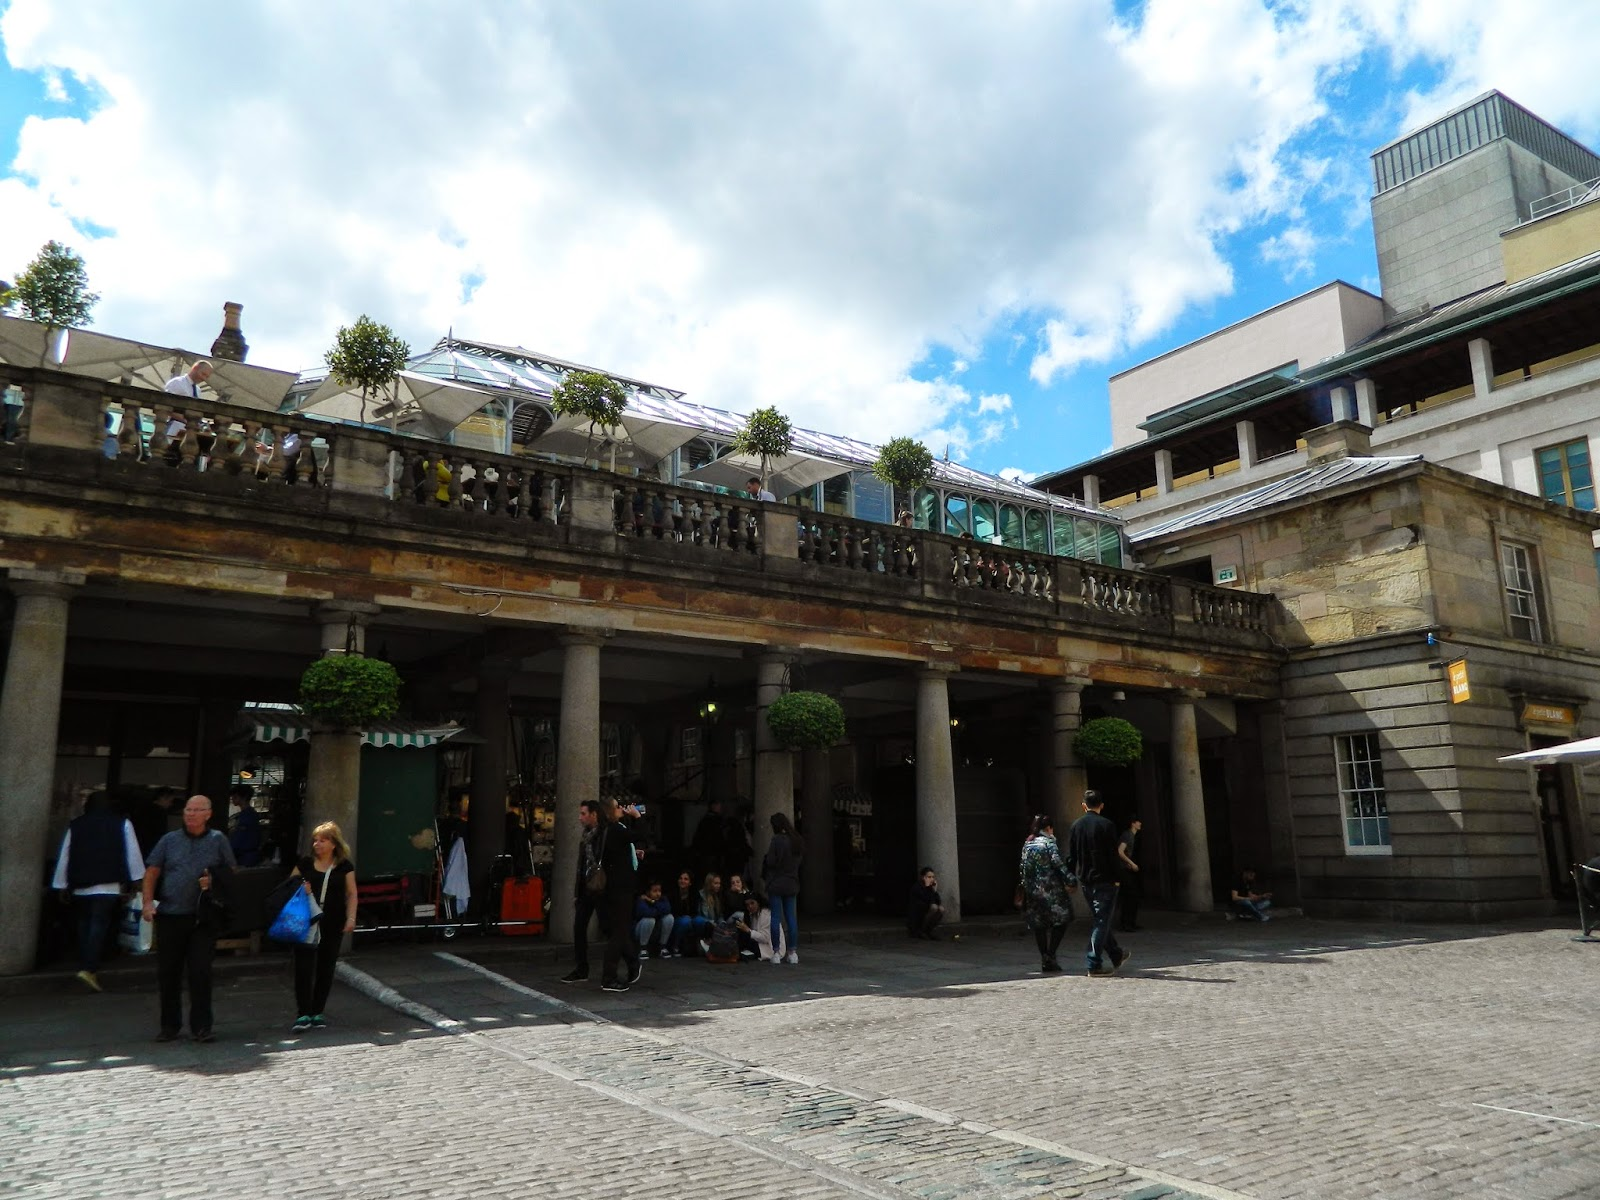 covent garden architecture people outside sun clear day summer roof